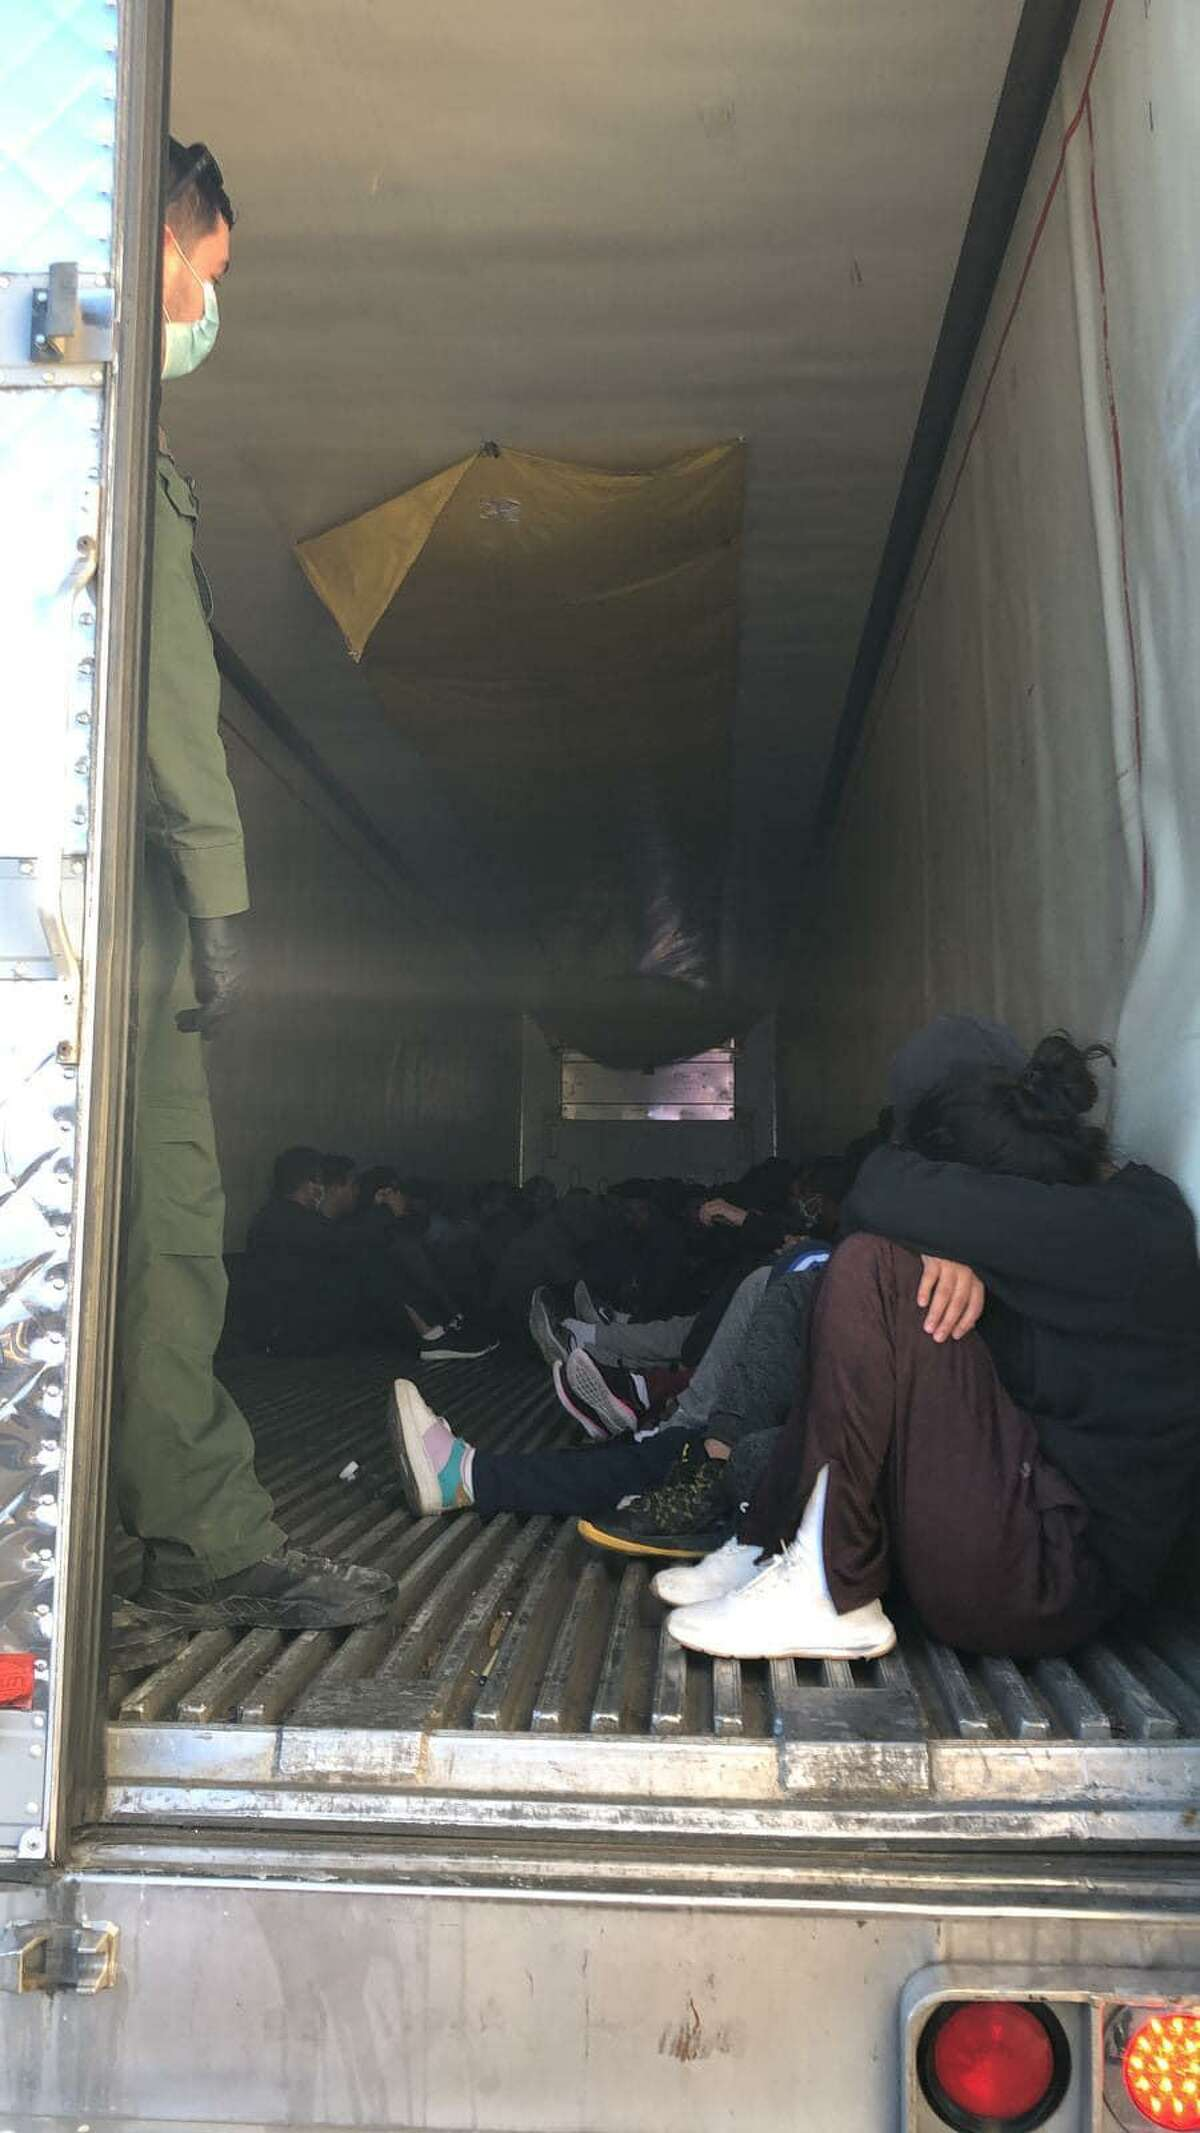 Laredo police officers and U.S. Border Patrol agents discovered 52 people inside a trailer. All were determined to be immigrants who were in the country illegally.